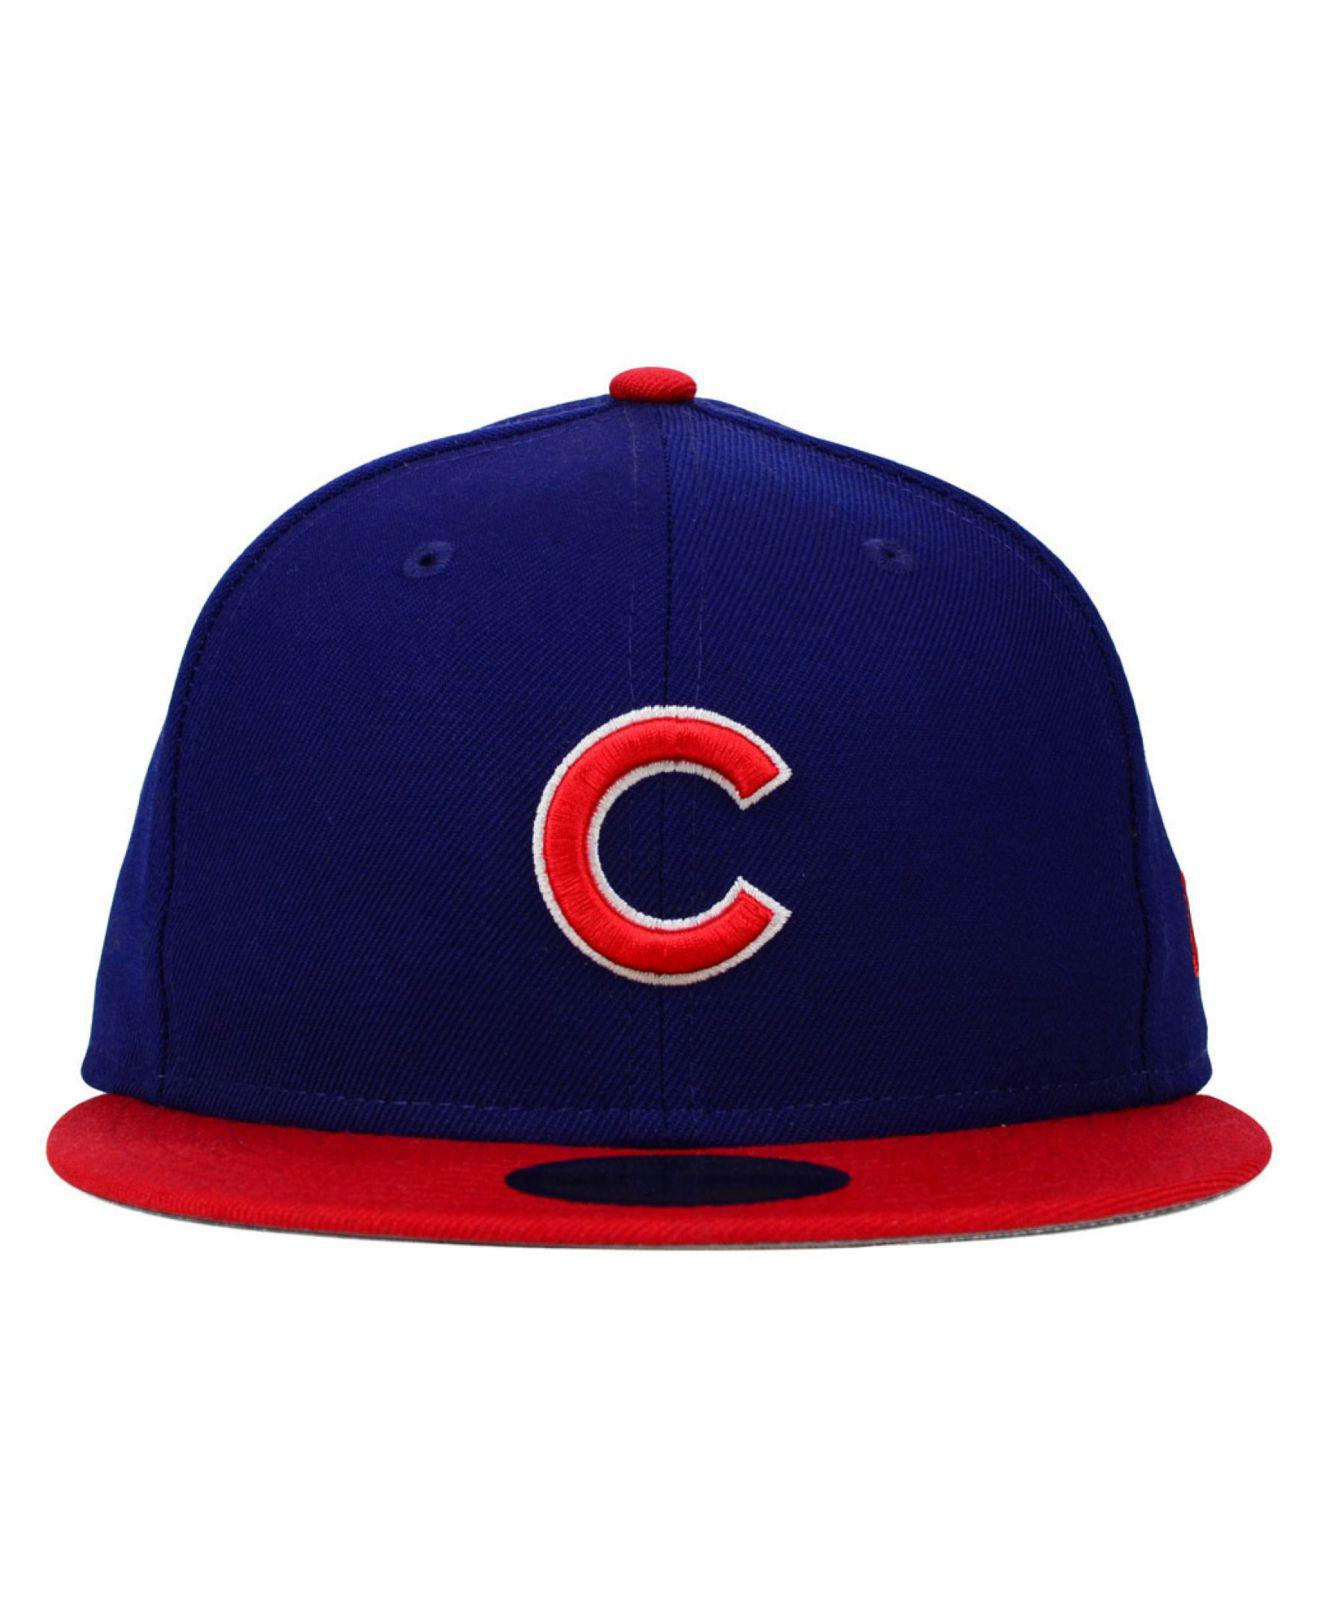 d7597f0f2f8 Lyst - KTZ Chicago Cubs Mlb Cooperstown 59fifty Cap in Red for Men